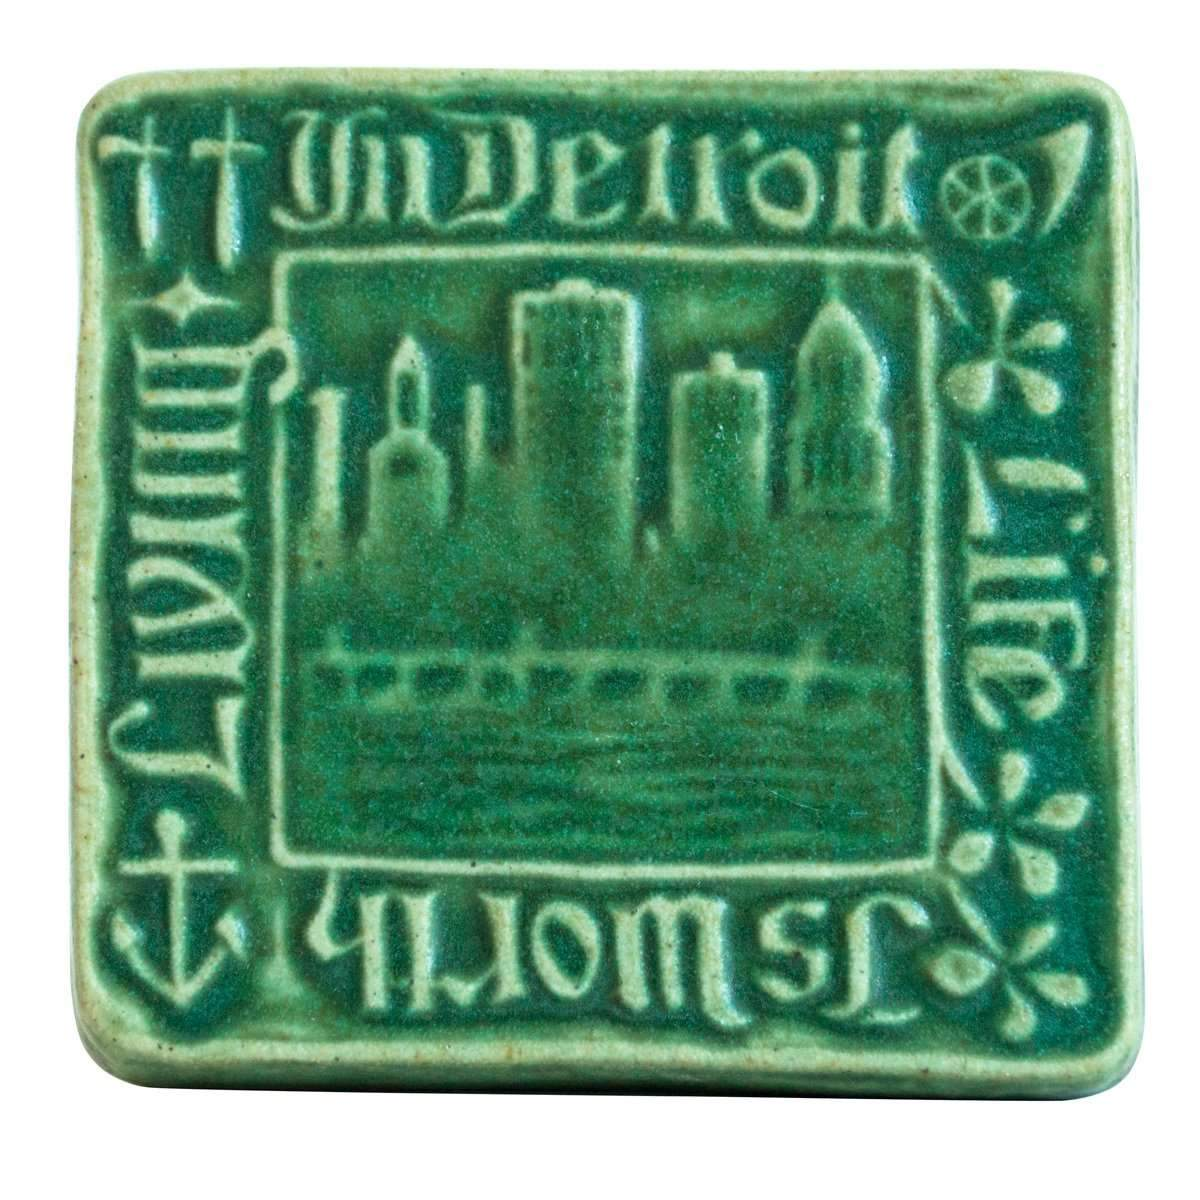 4x4 Old Detroit Pewabic Tile - Leaf